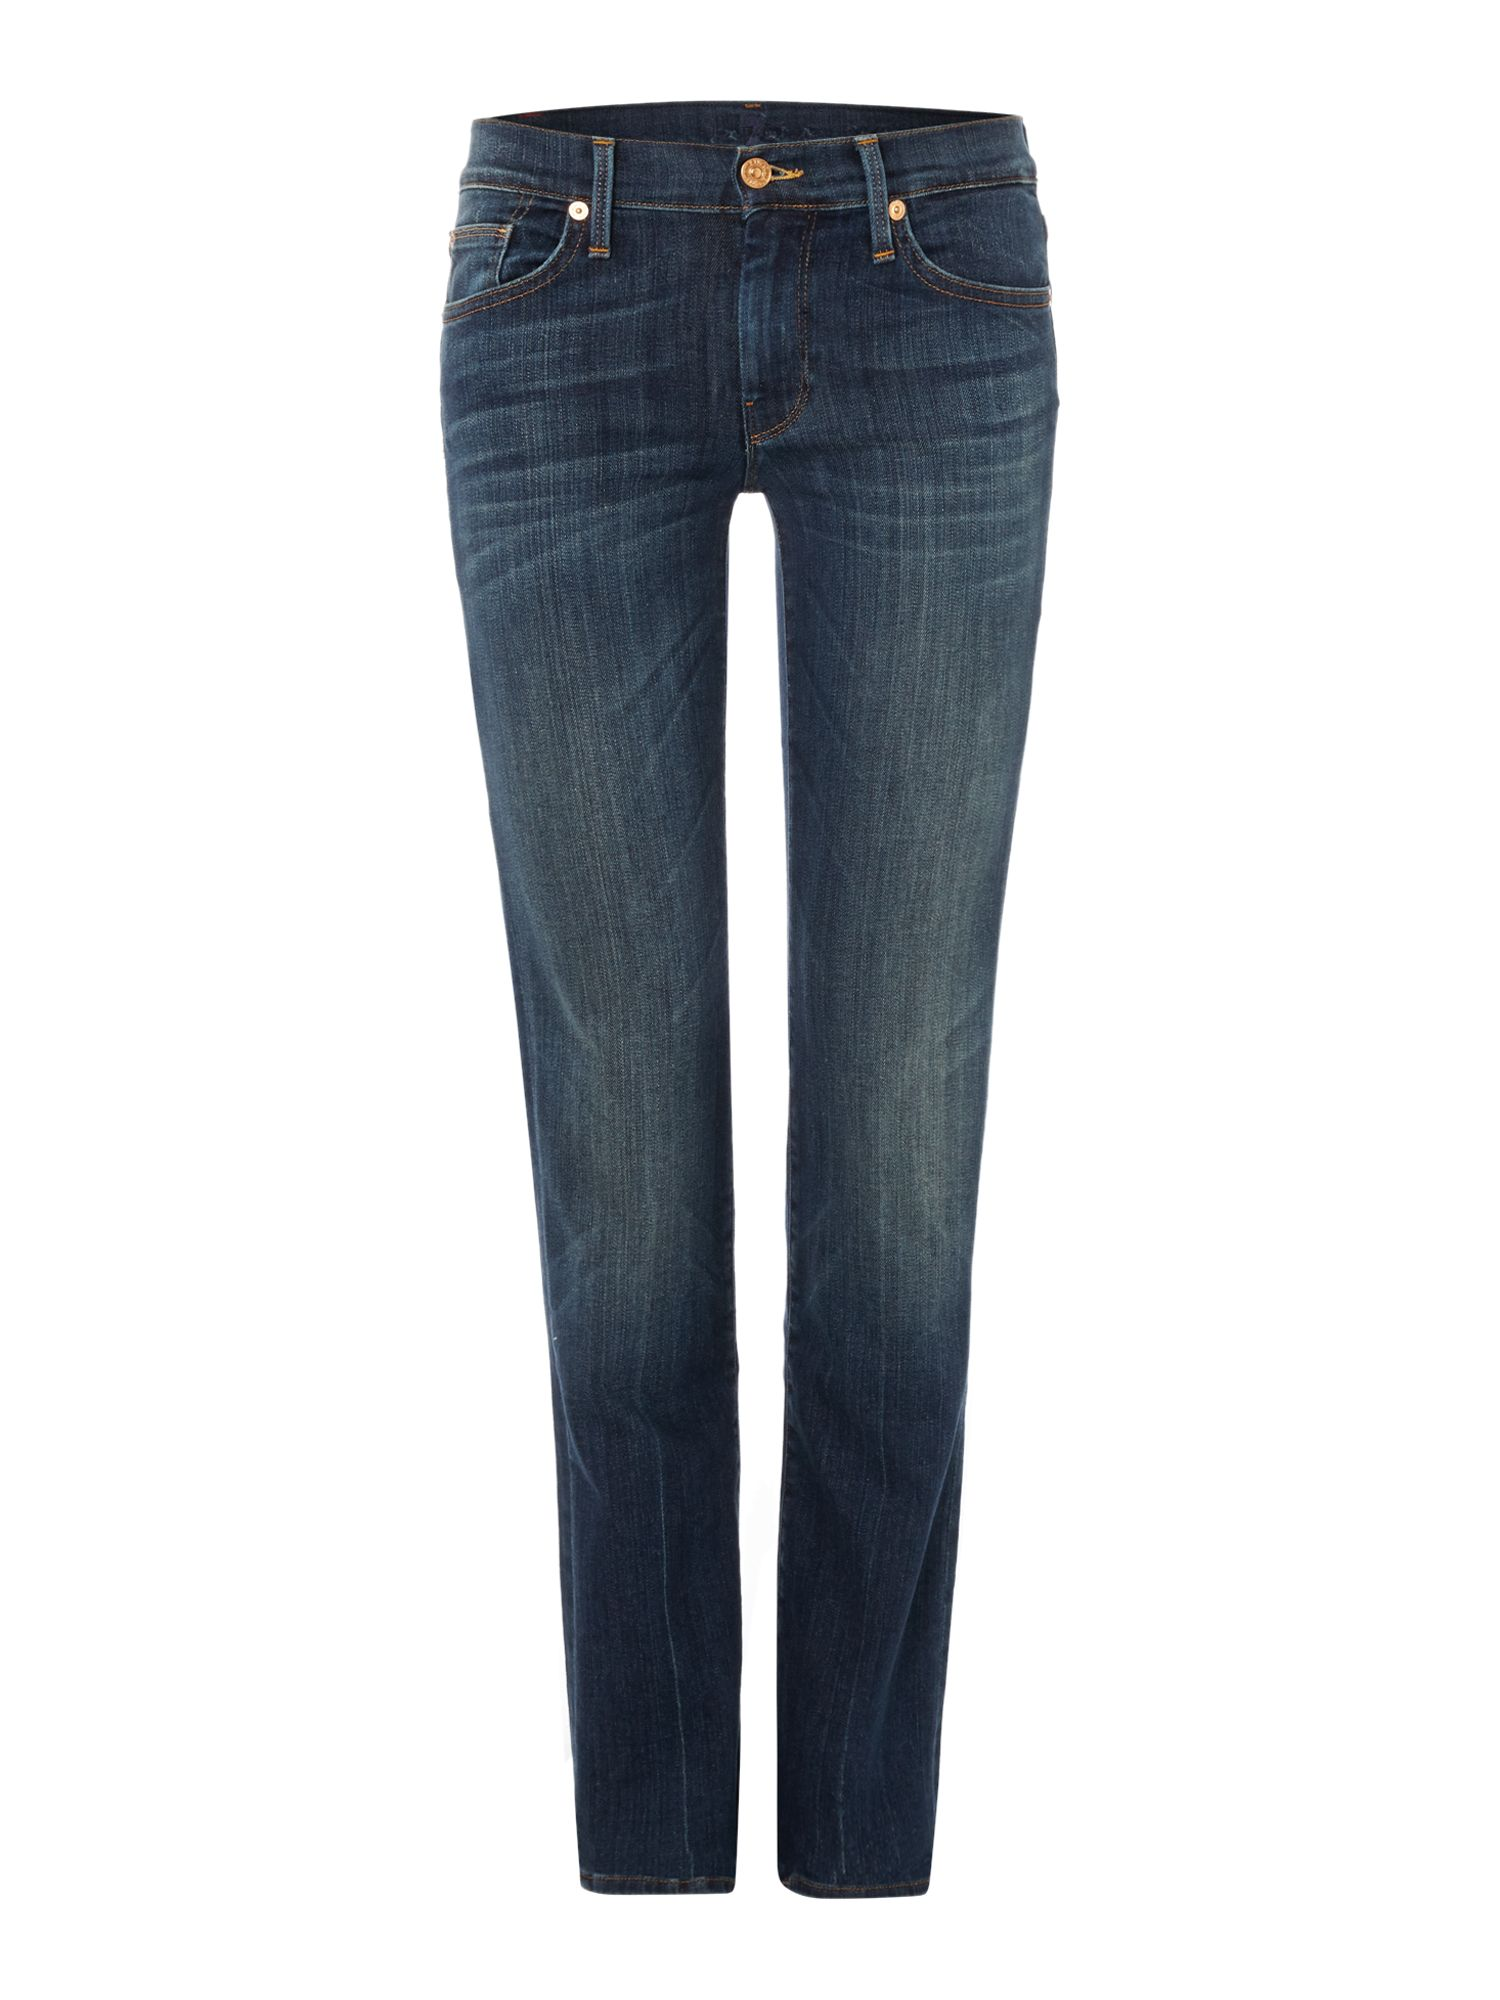 7 For All Mankind 7 For All Mankind Straight leg jeans in Brooklyn Dark, Denim Mid Wash